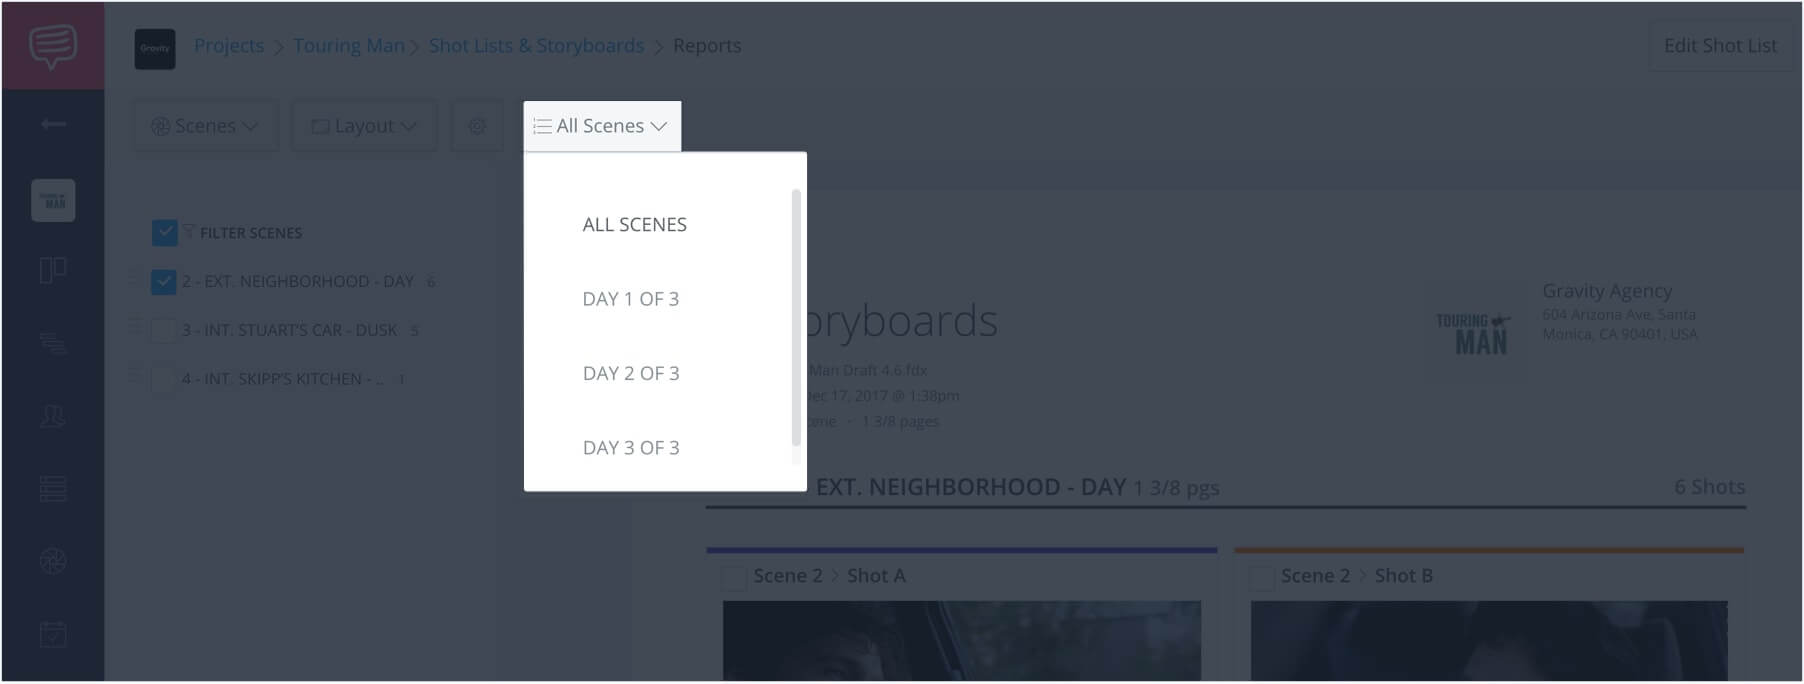 How to Make a Storyboard Online - StudioBinder Storyboard Creator - 24